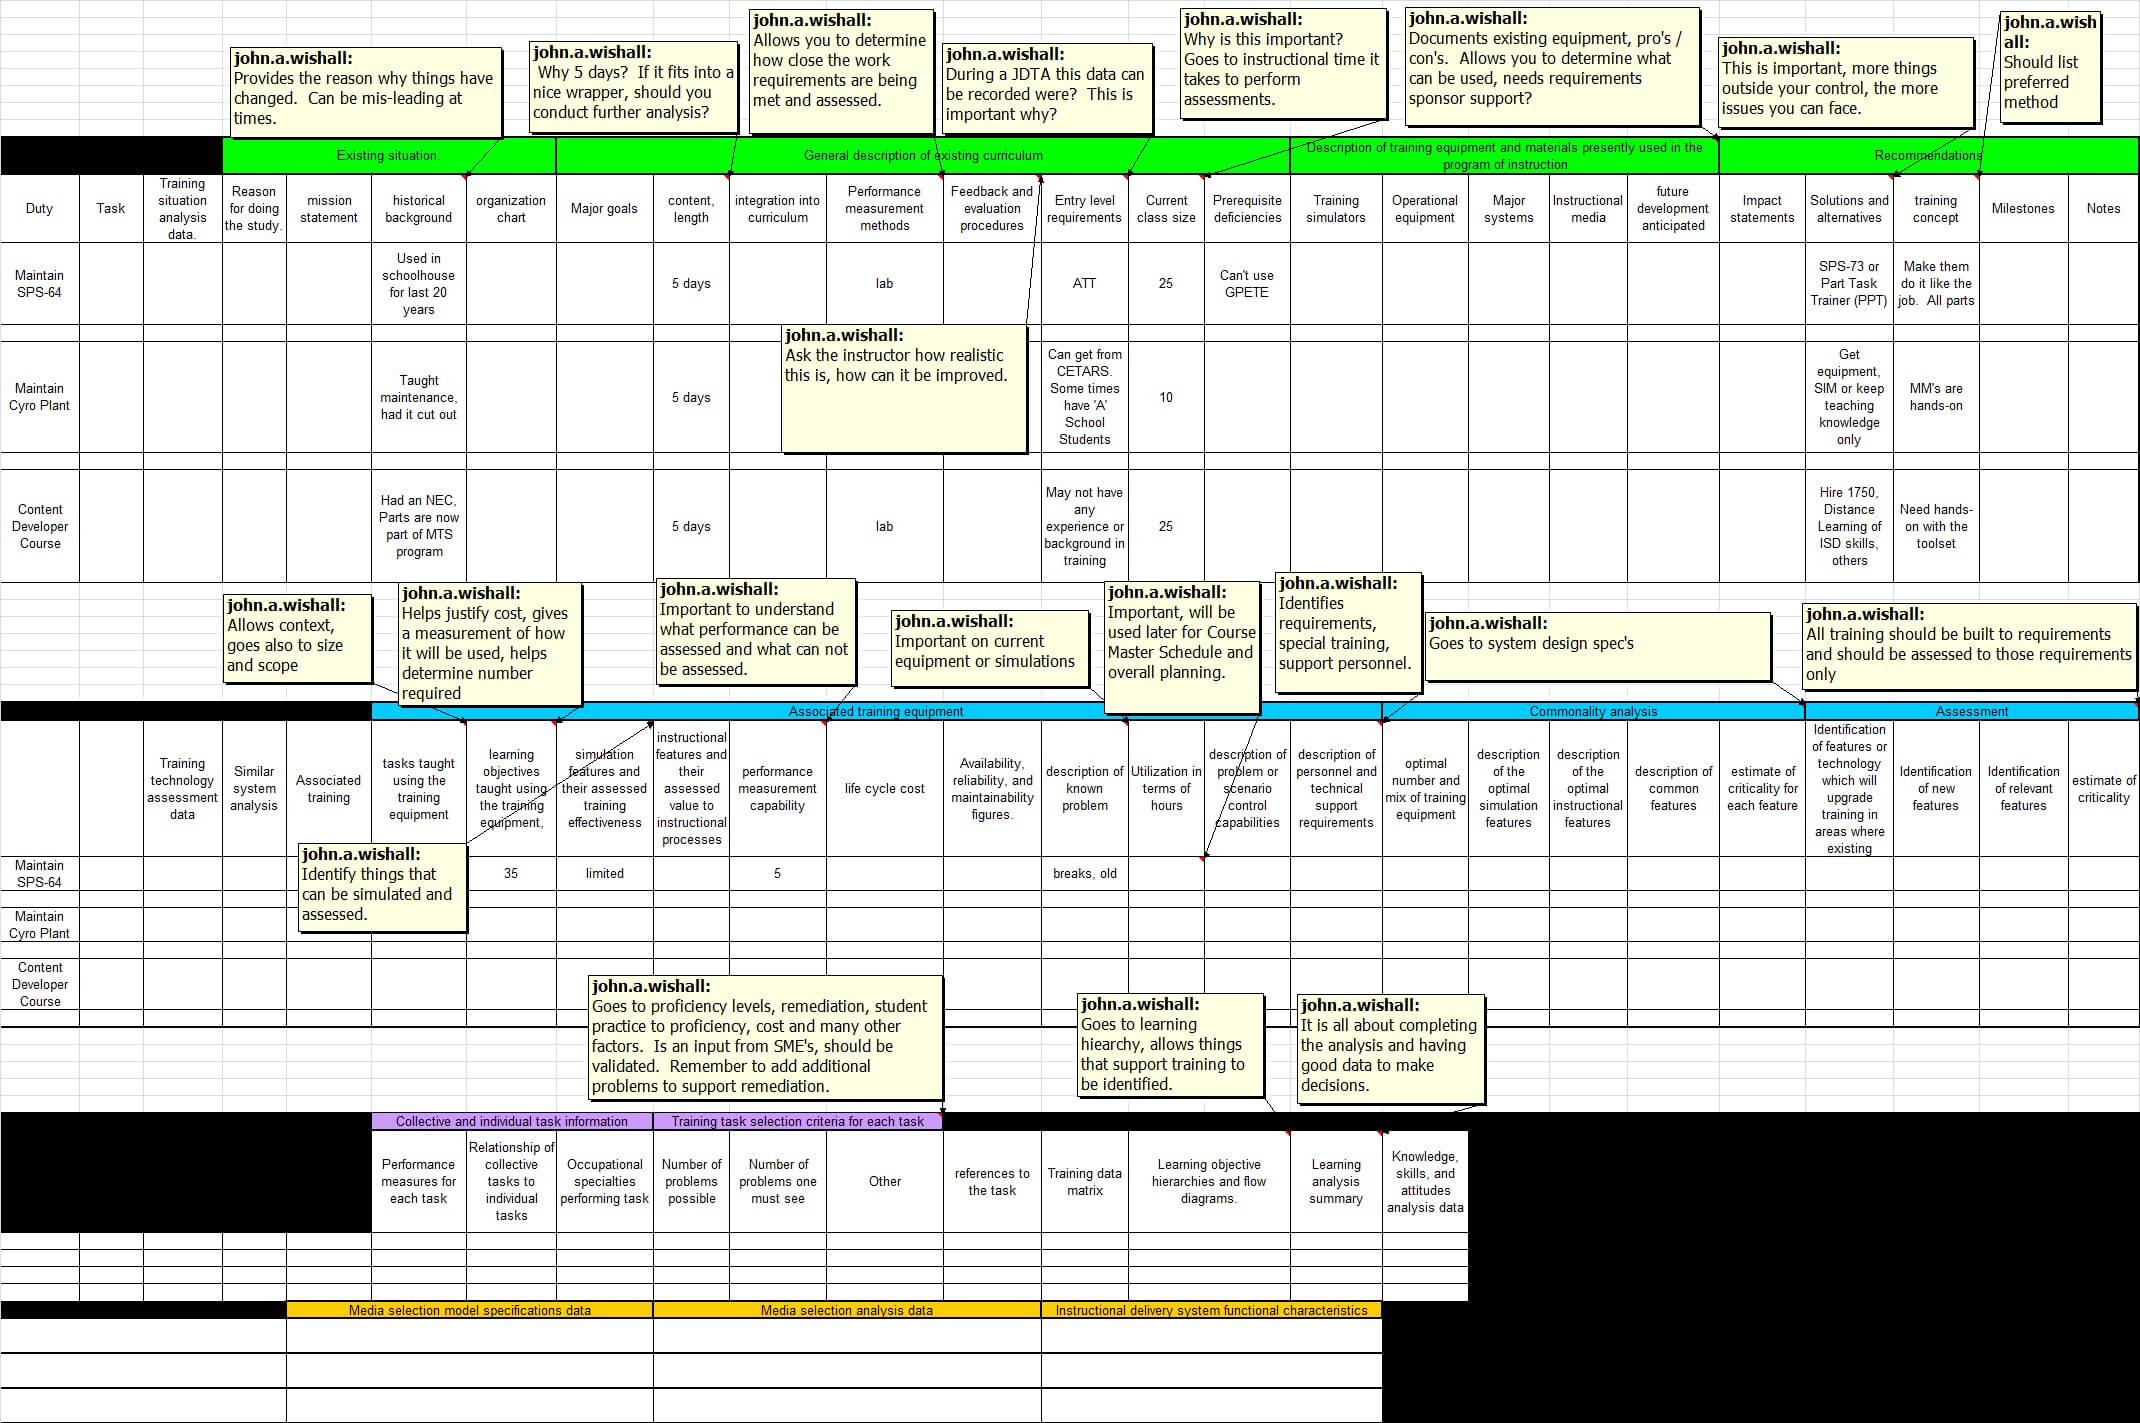 Navy Training Transformation - 5.2.3.1 Training Situation in Training Needs Analysis Report Template